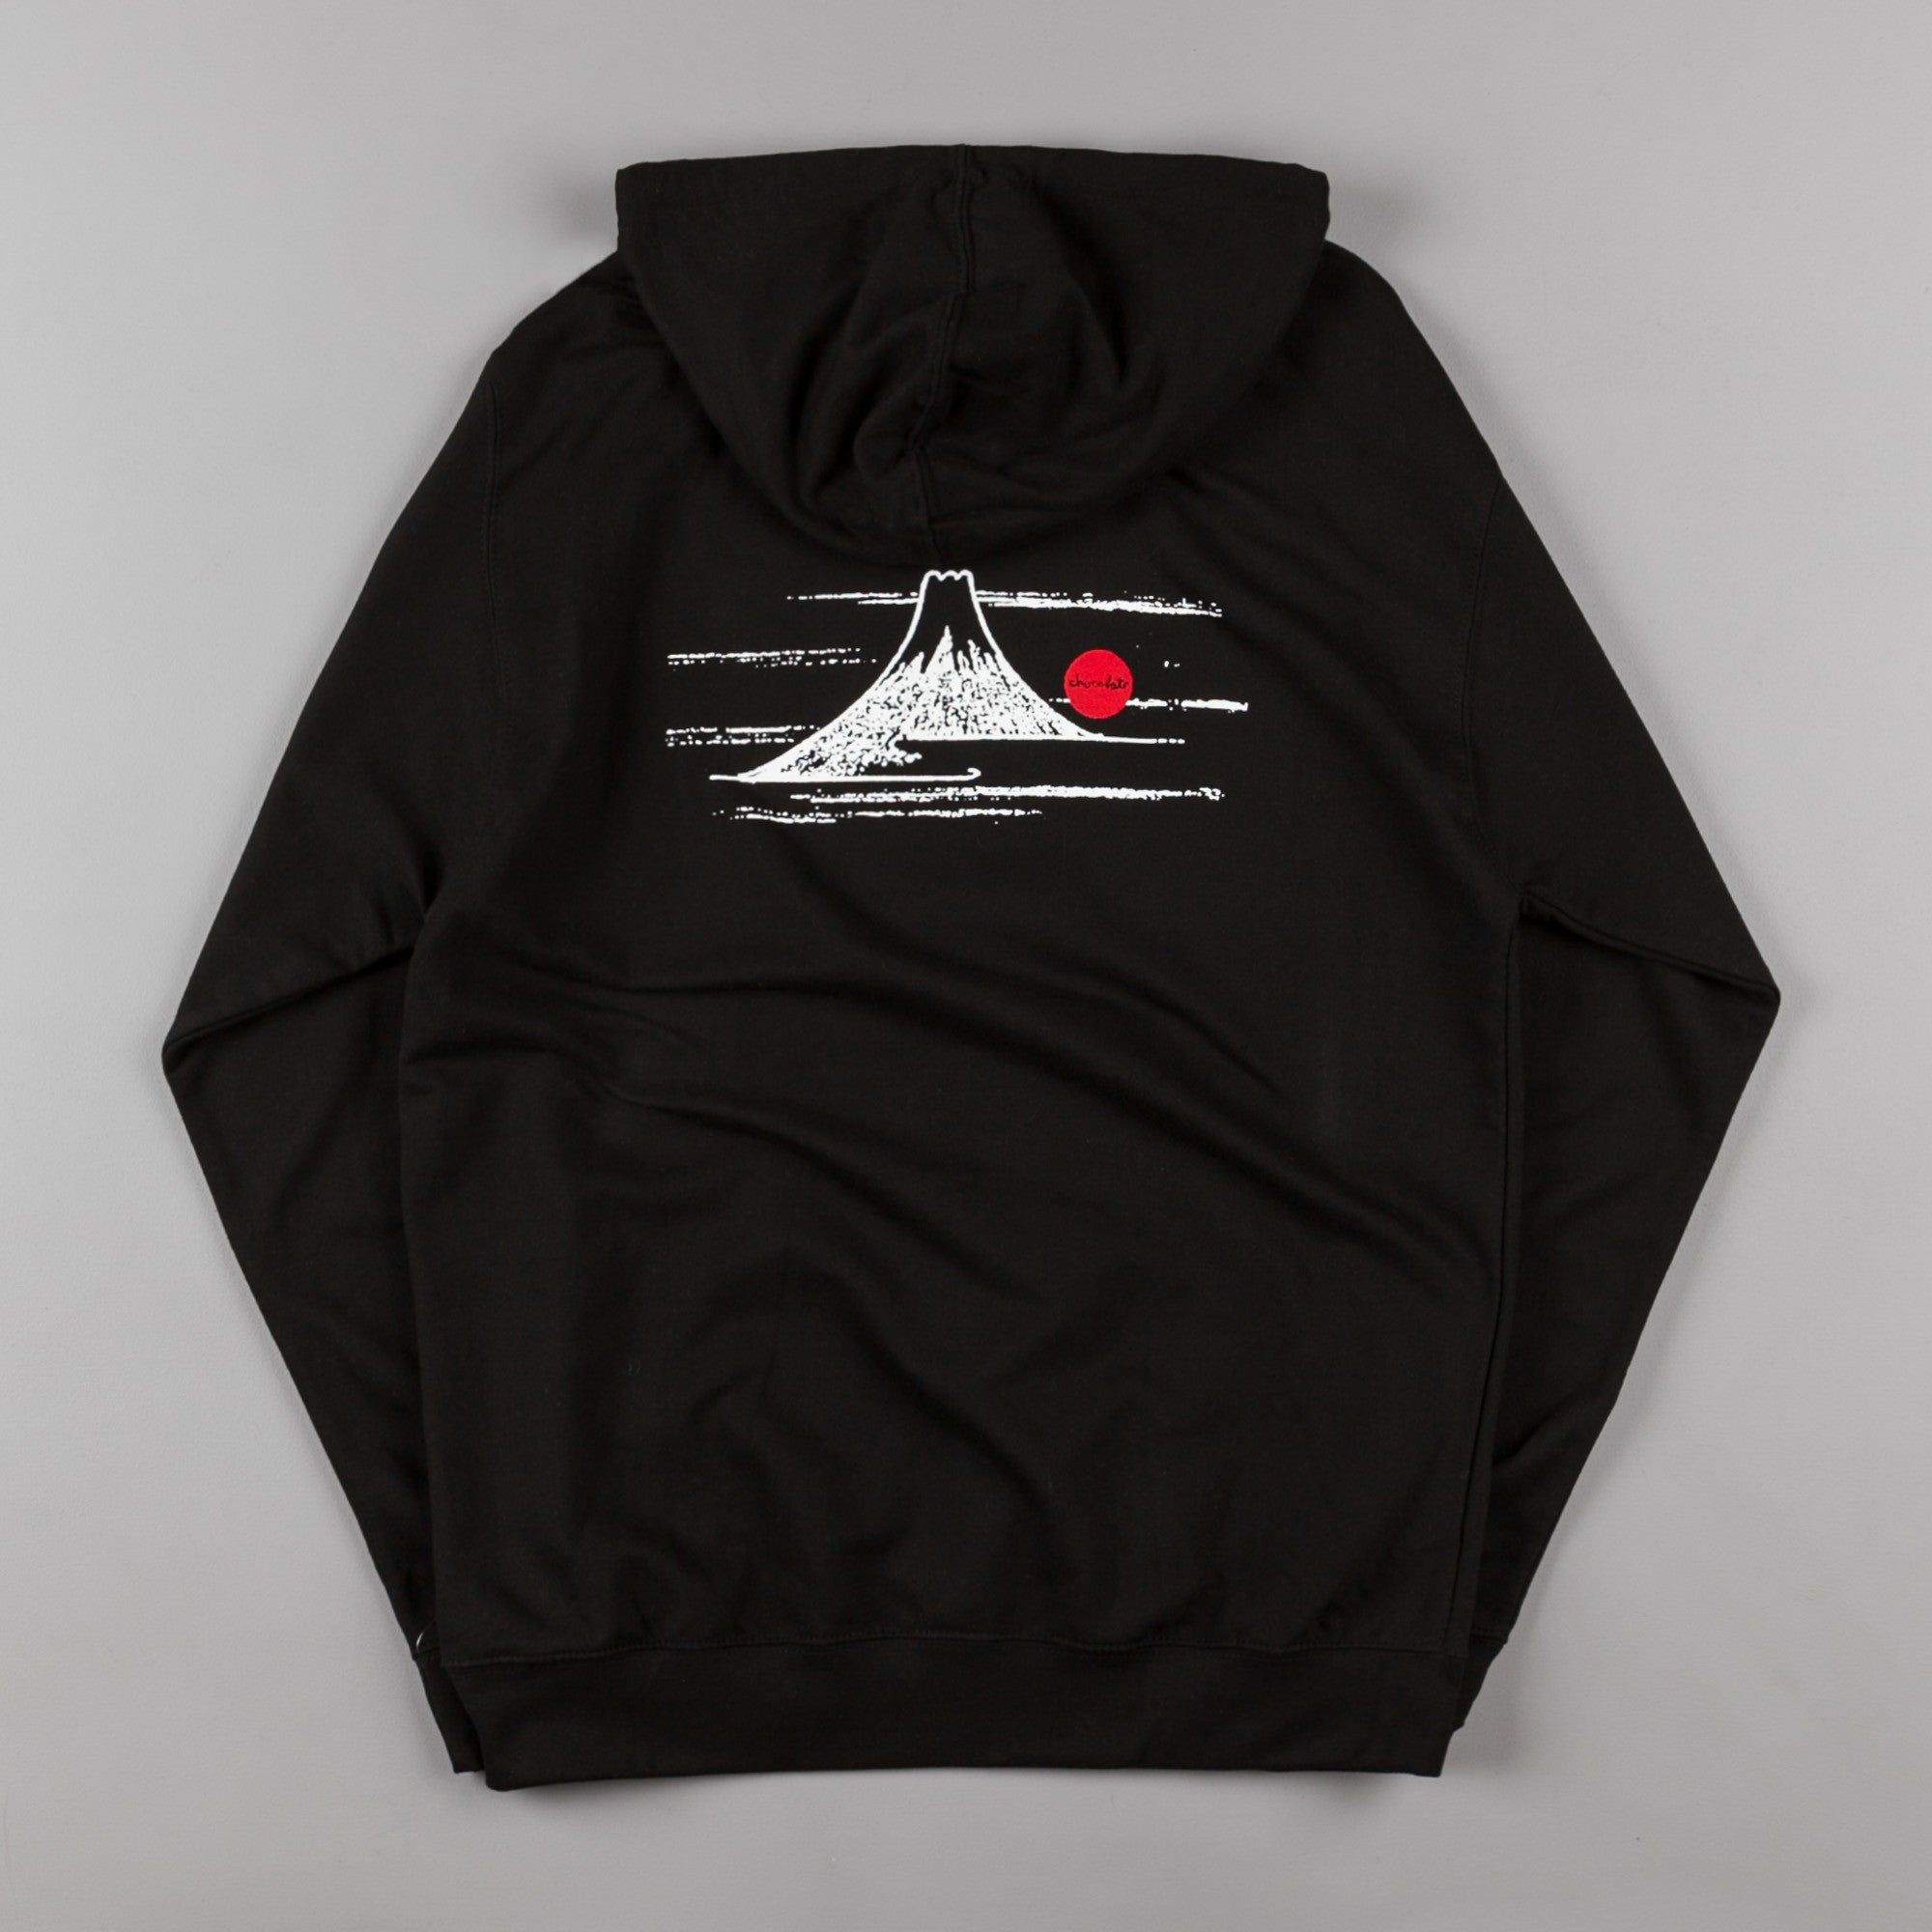 Chocolate Rising Sun Hooded Sweatshirt - Black